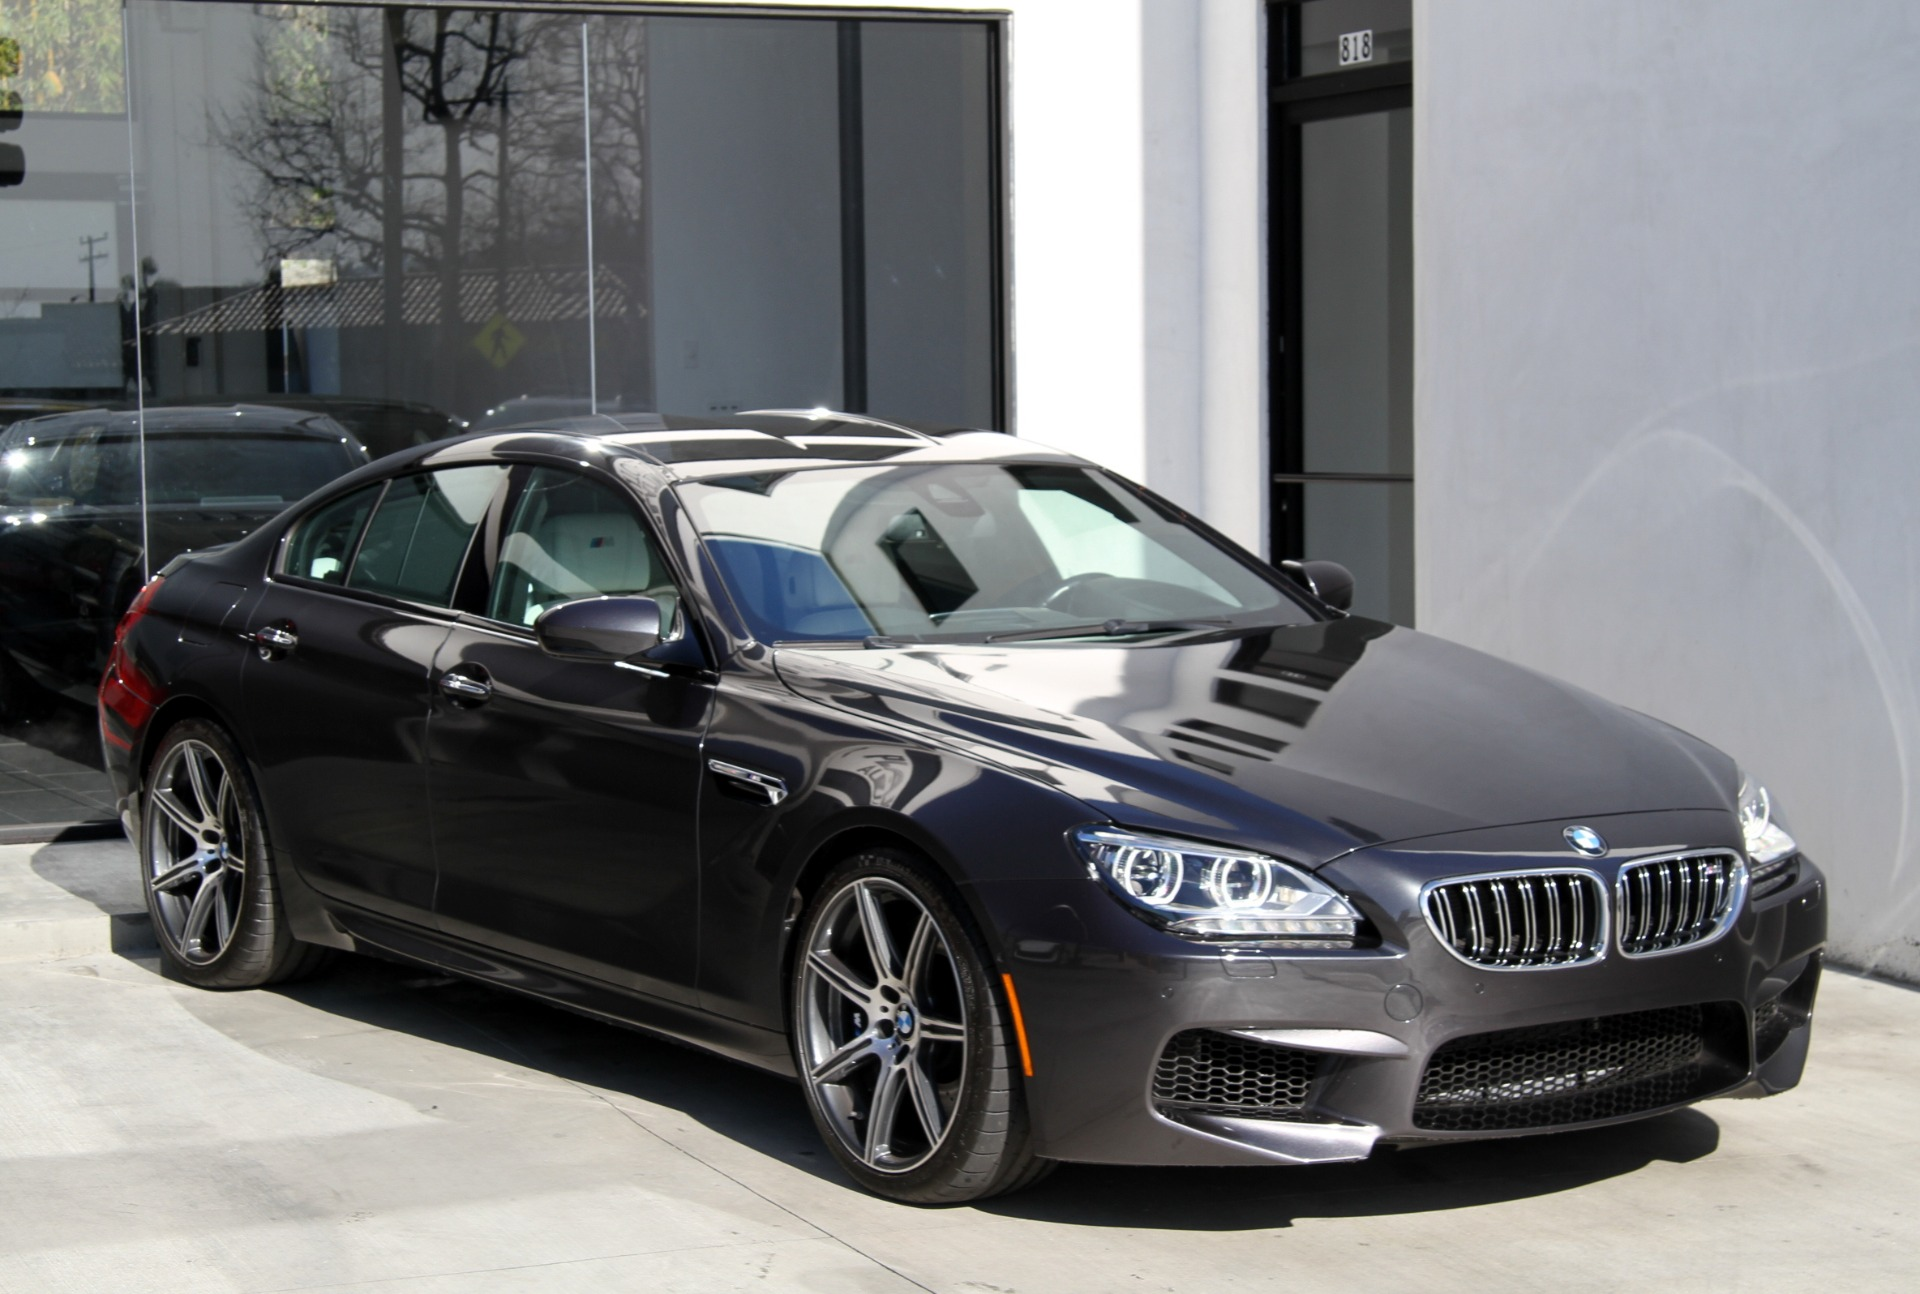 2015 bmw m6 gran coupe competition pkg stock 6075 for sale near redondo beach ca ca. Black Bedroom Furniture Sets. Home Design Ideas